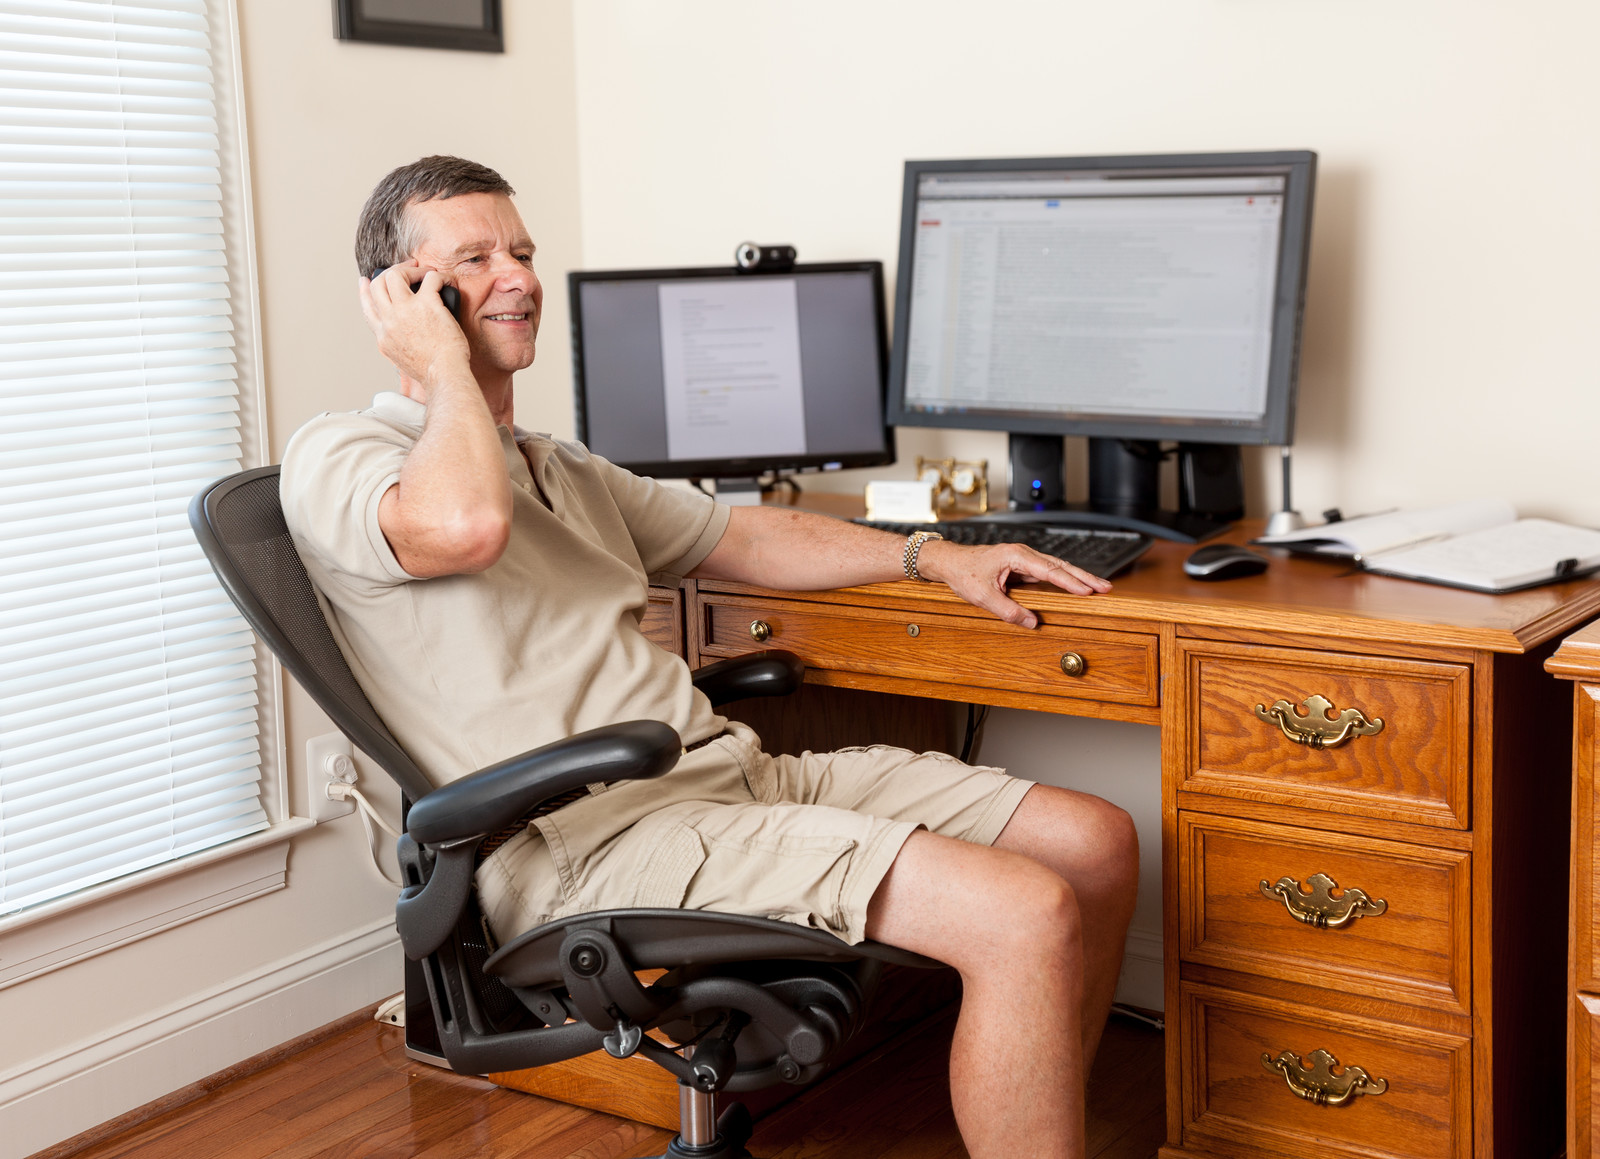 man in home office at desk on the phone in front of the computer, reporting a medical alert scam to the FTC